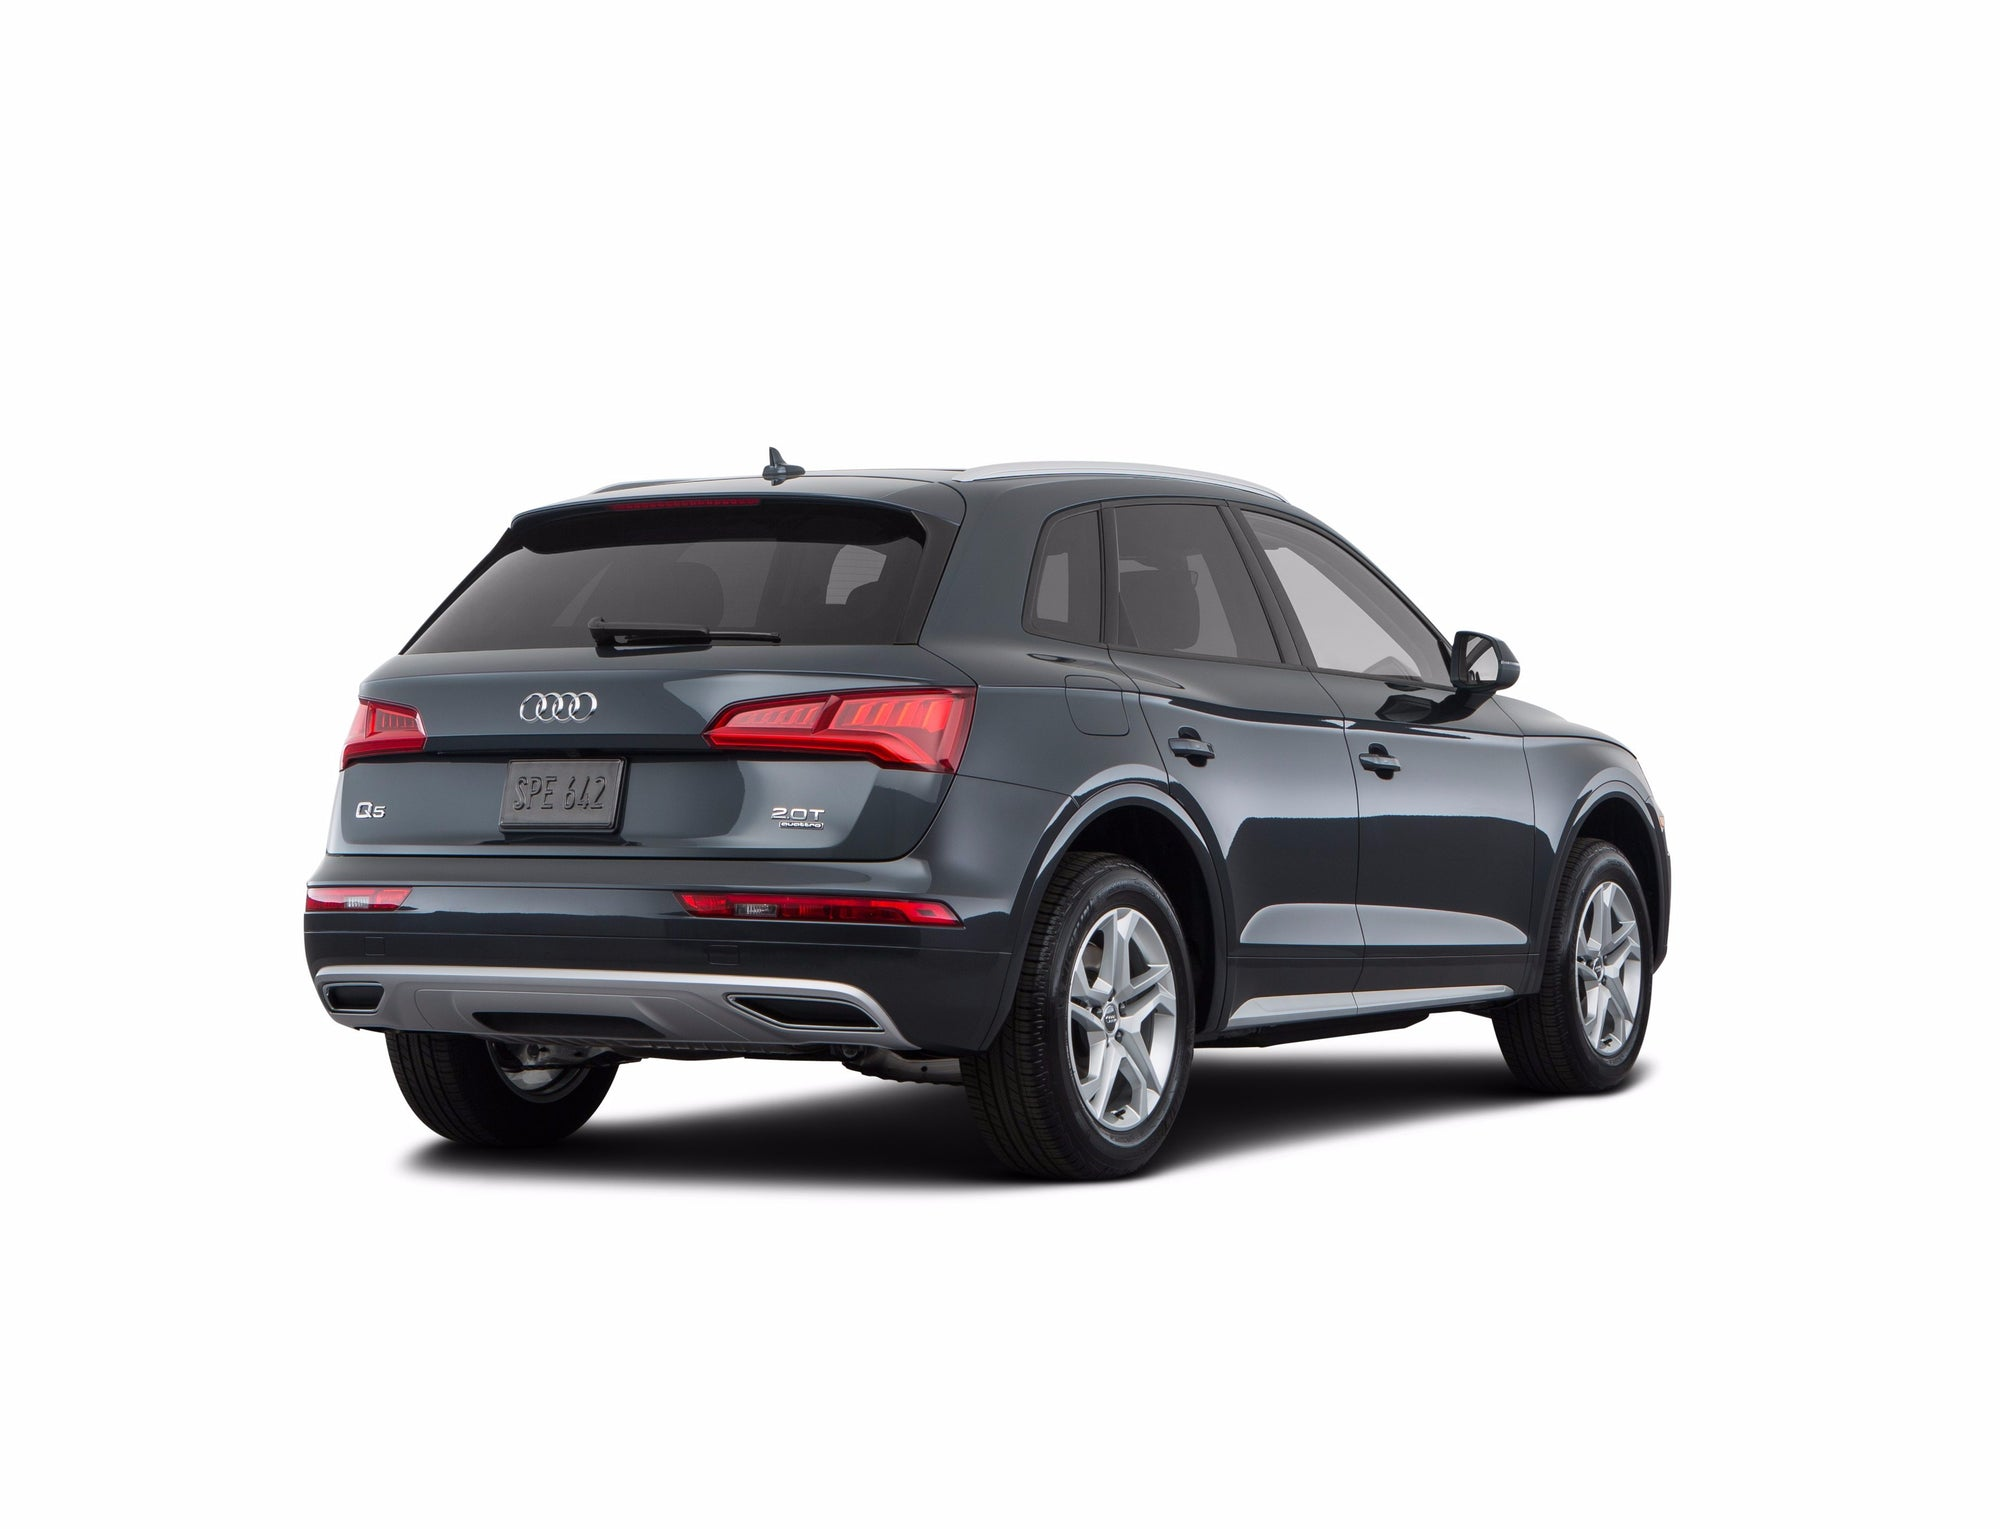 Audi Q5 Hitch Wiring Archive Of Automotive Diagram Q7 Trailer Made To Be Hidden Tailored For Sq5 Rh Stealthhitches Com Tow